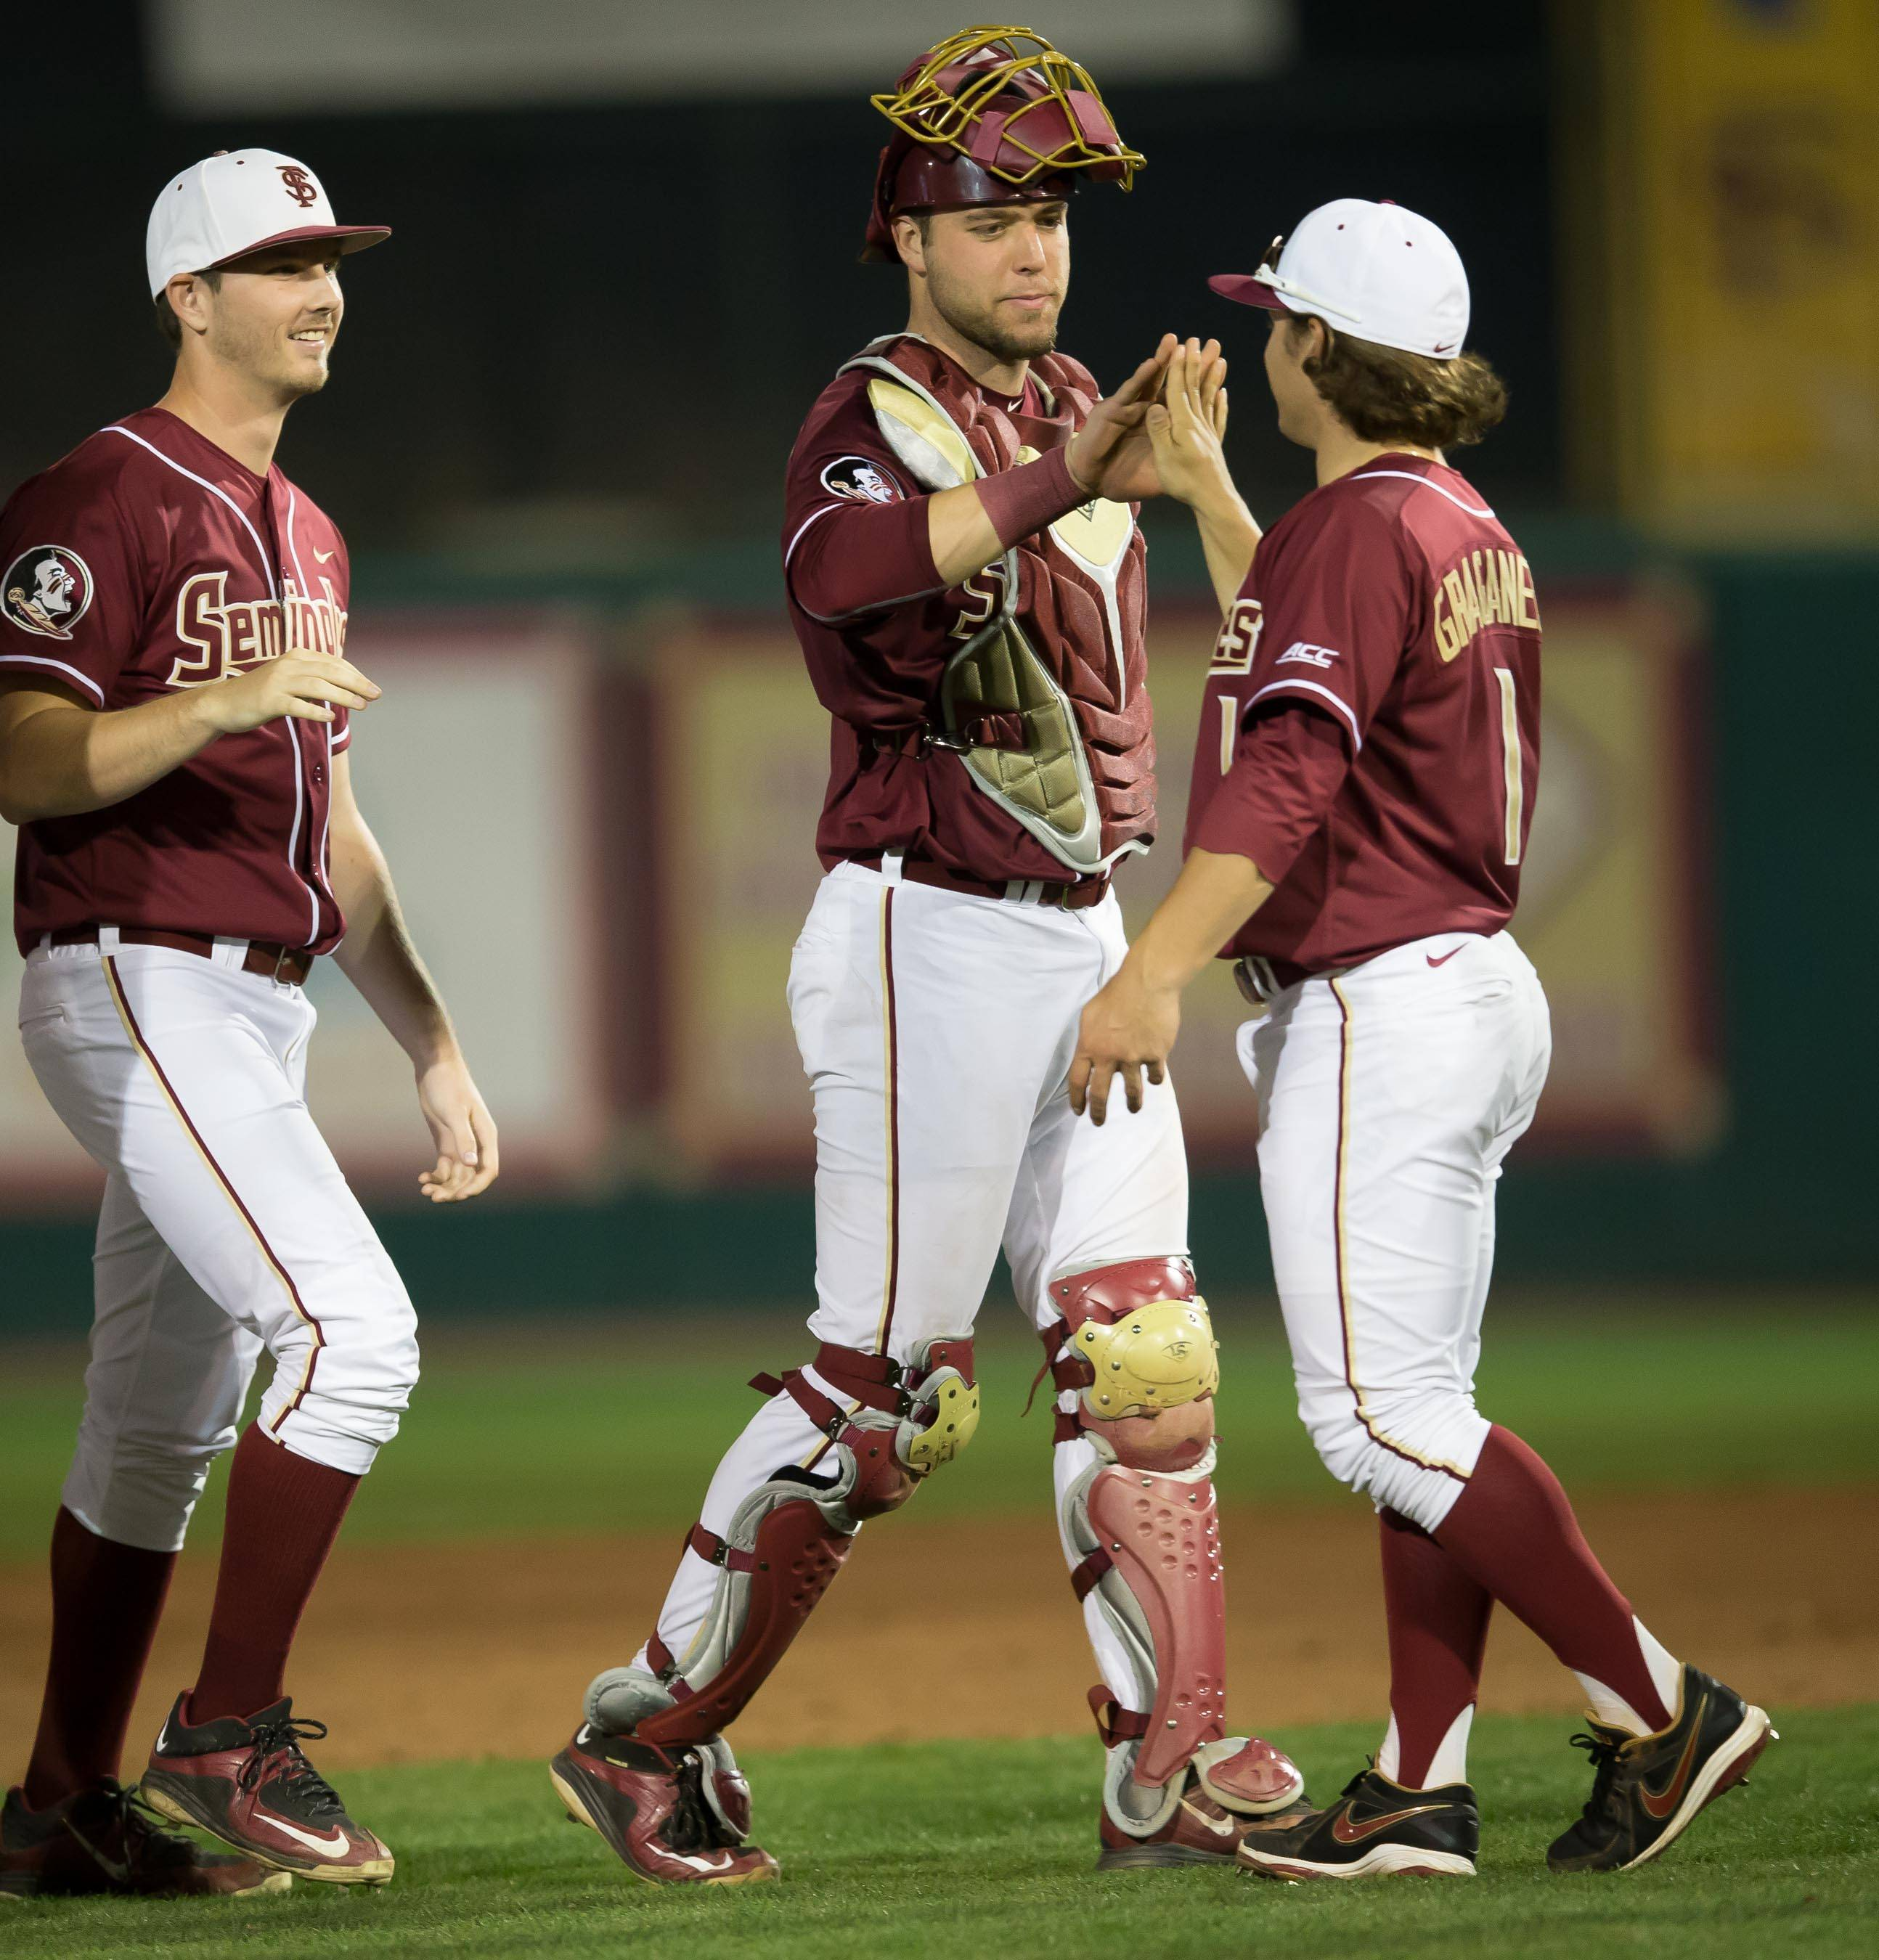 Florida State vs USF – Game 2